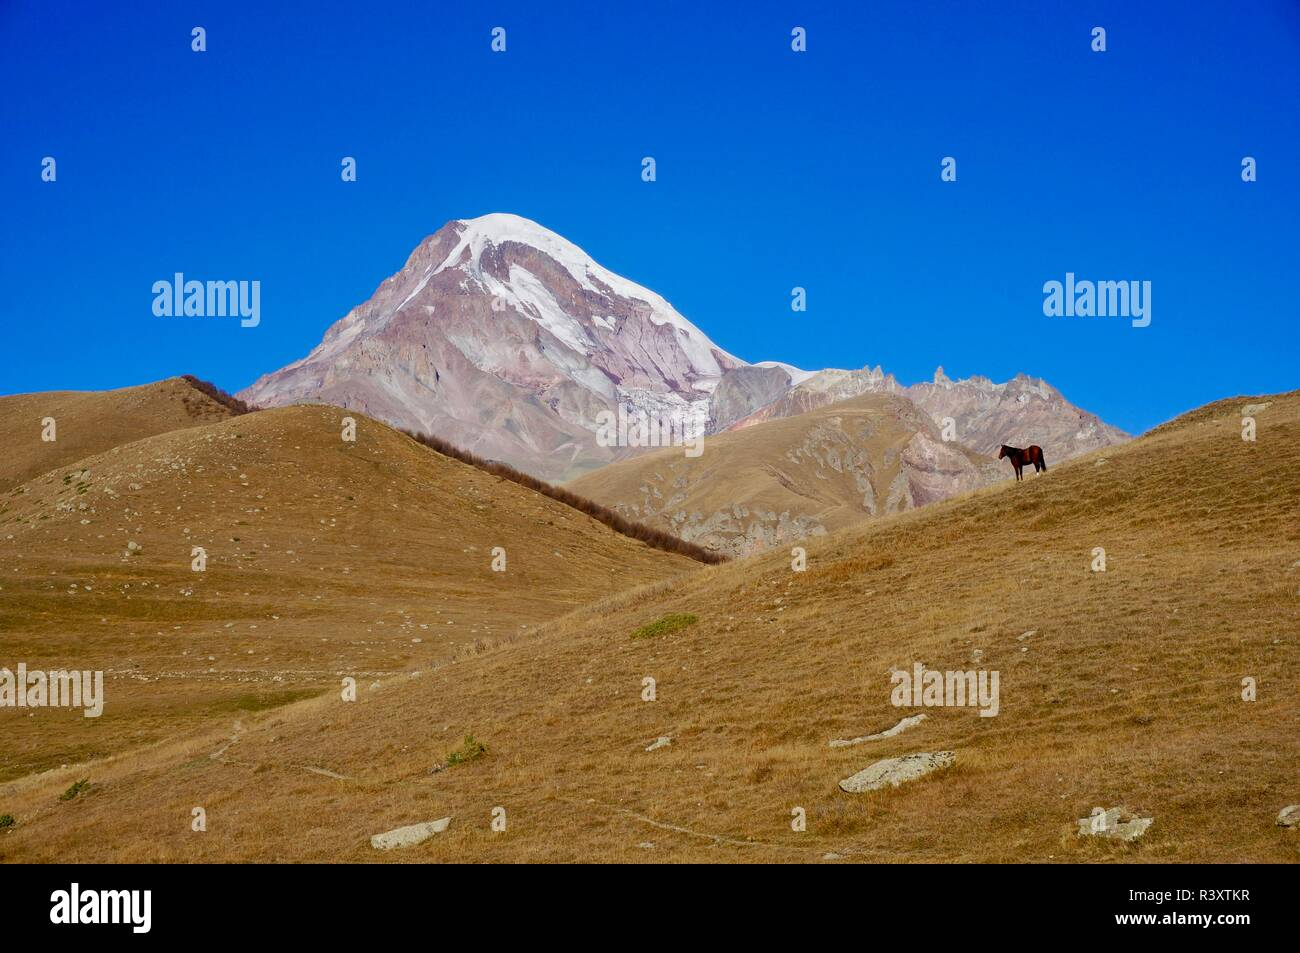 A horse stops in front of Mount Kazbegi, in the Caucasus mountains of Georgia - Stock Image